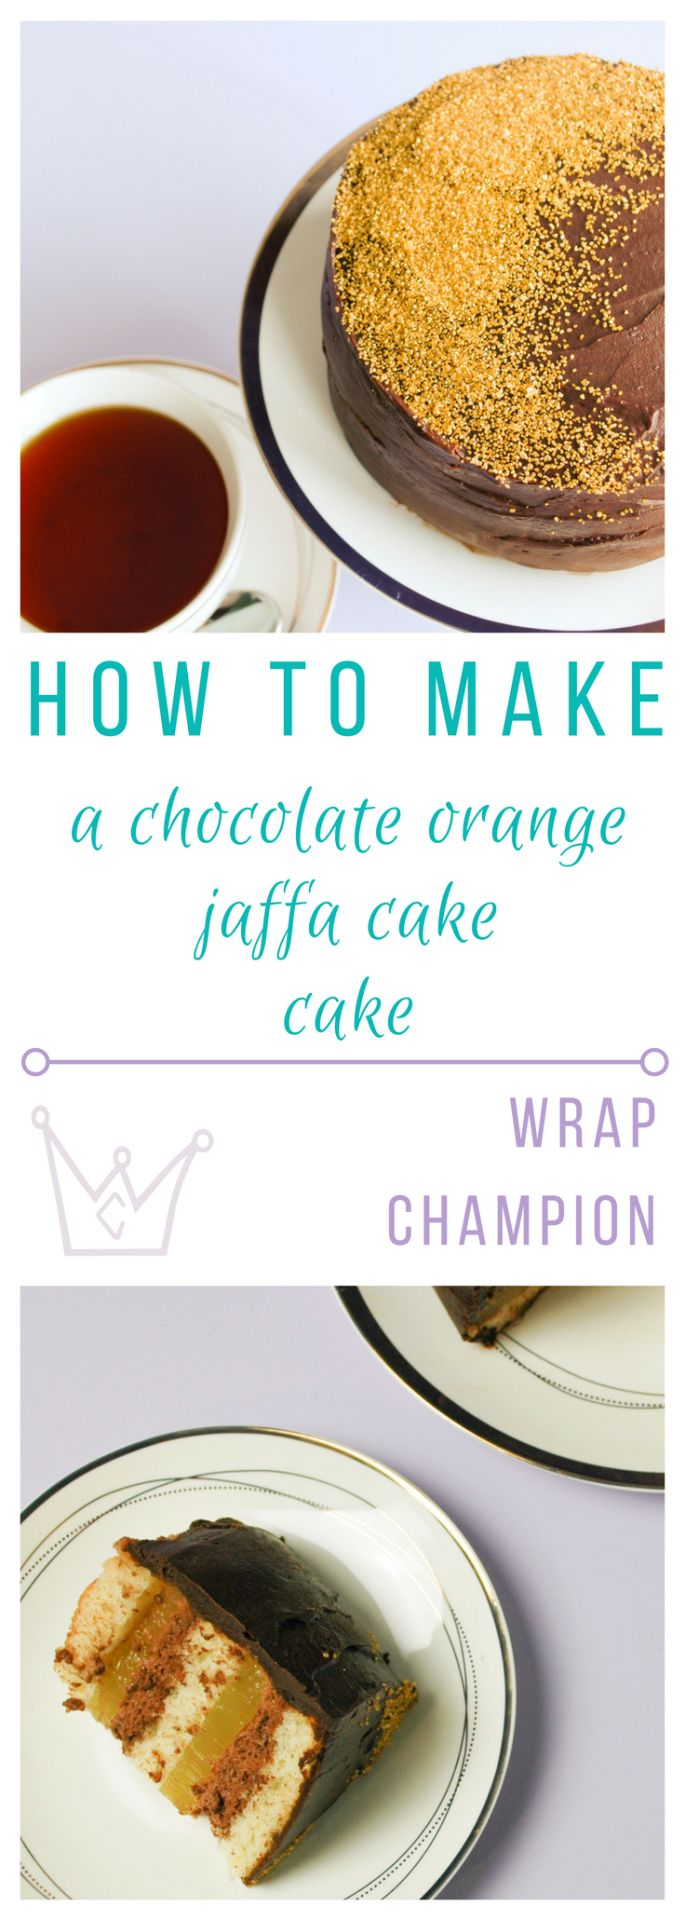 Jaffa Cake Cake Recipe - step by step instructions to make this awesome cake with genoise sponge, homemade orange jelly and from scratch chocolate mousse. Lastly, we cover the whole thing in a delicious chocolate ganache layer. I won't judge if you eat the whole thing